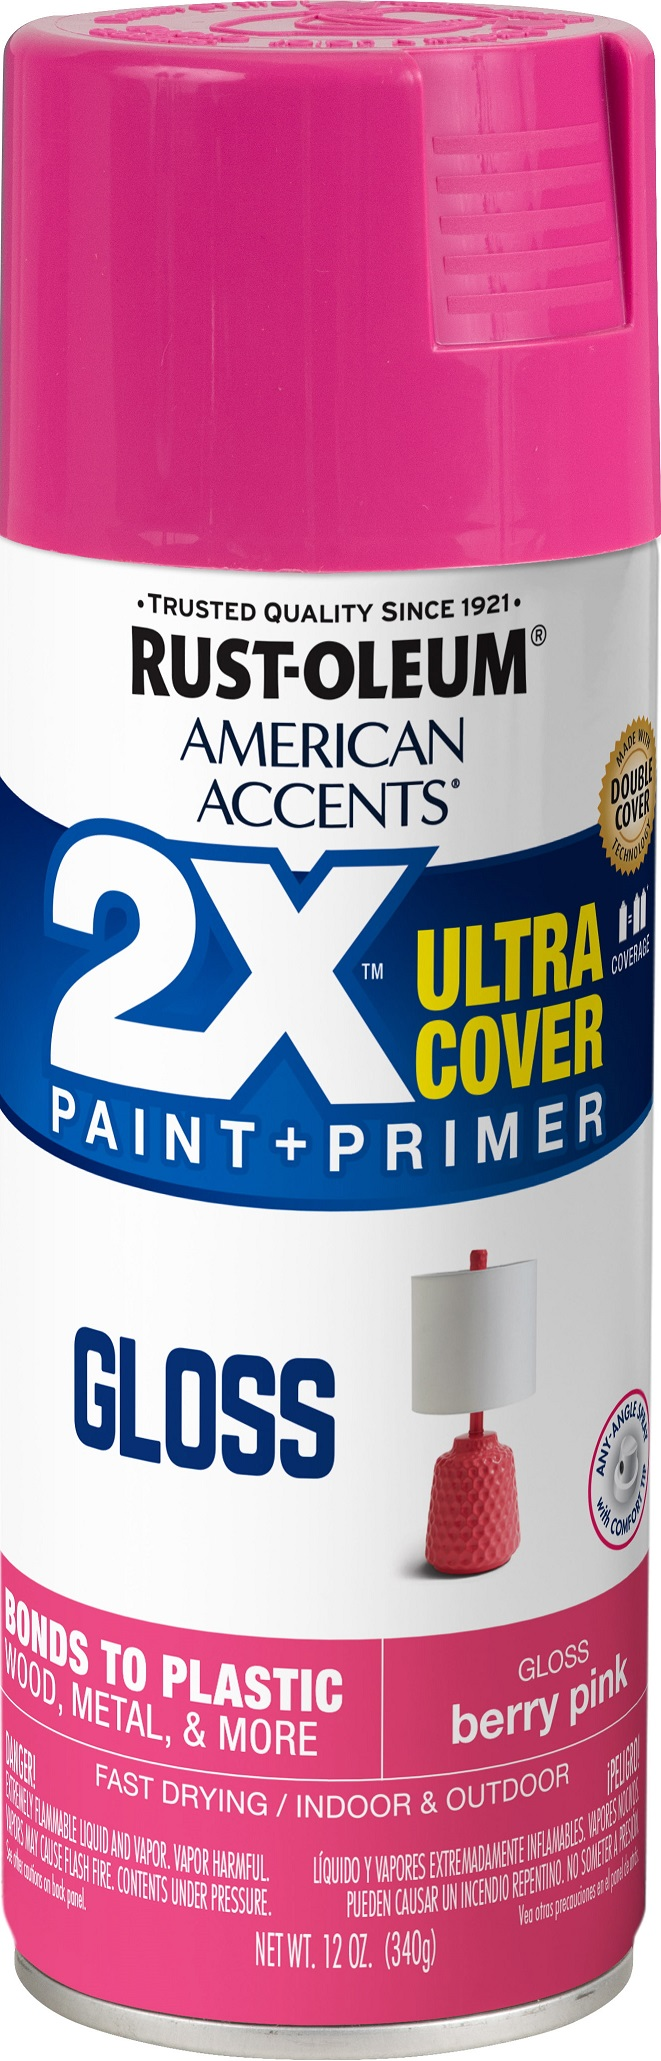 (3 Pack) Rust-Oleum American Accents Ultra Cover 2X Gloss Berry Pink Spray Paint and Primer in 1, 12 oz